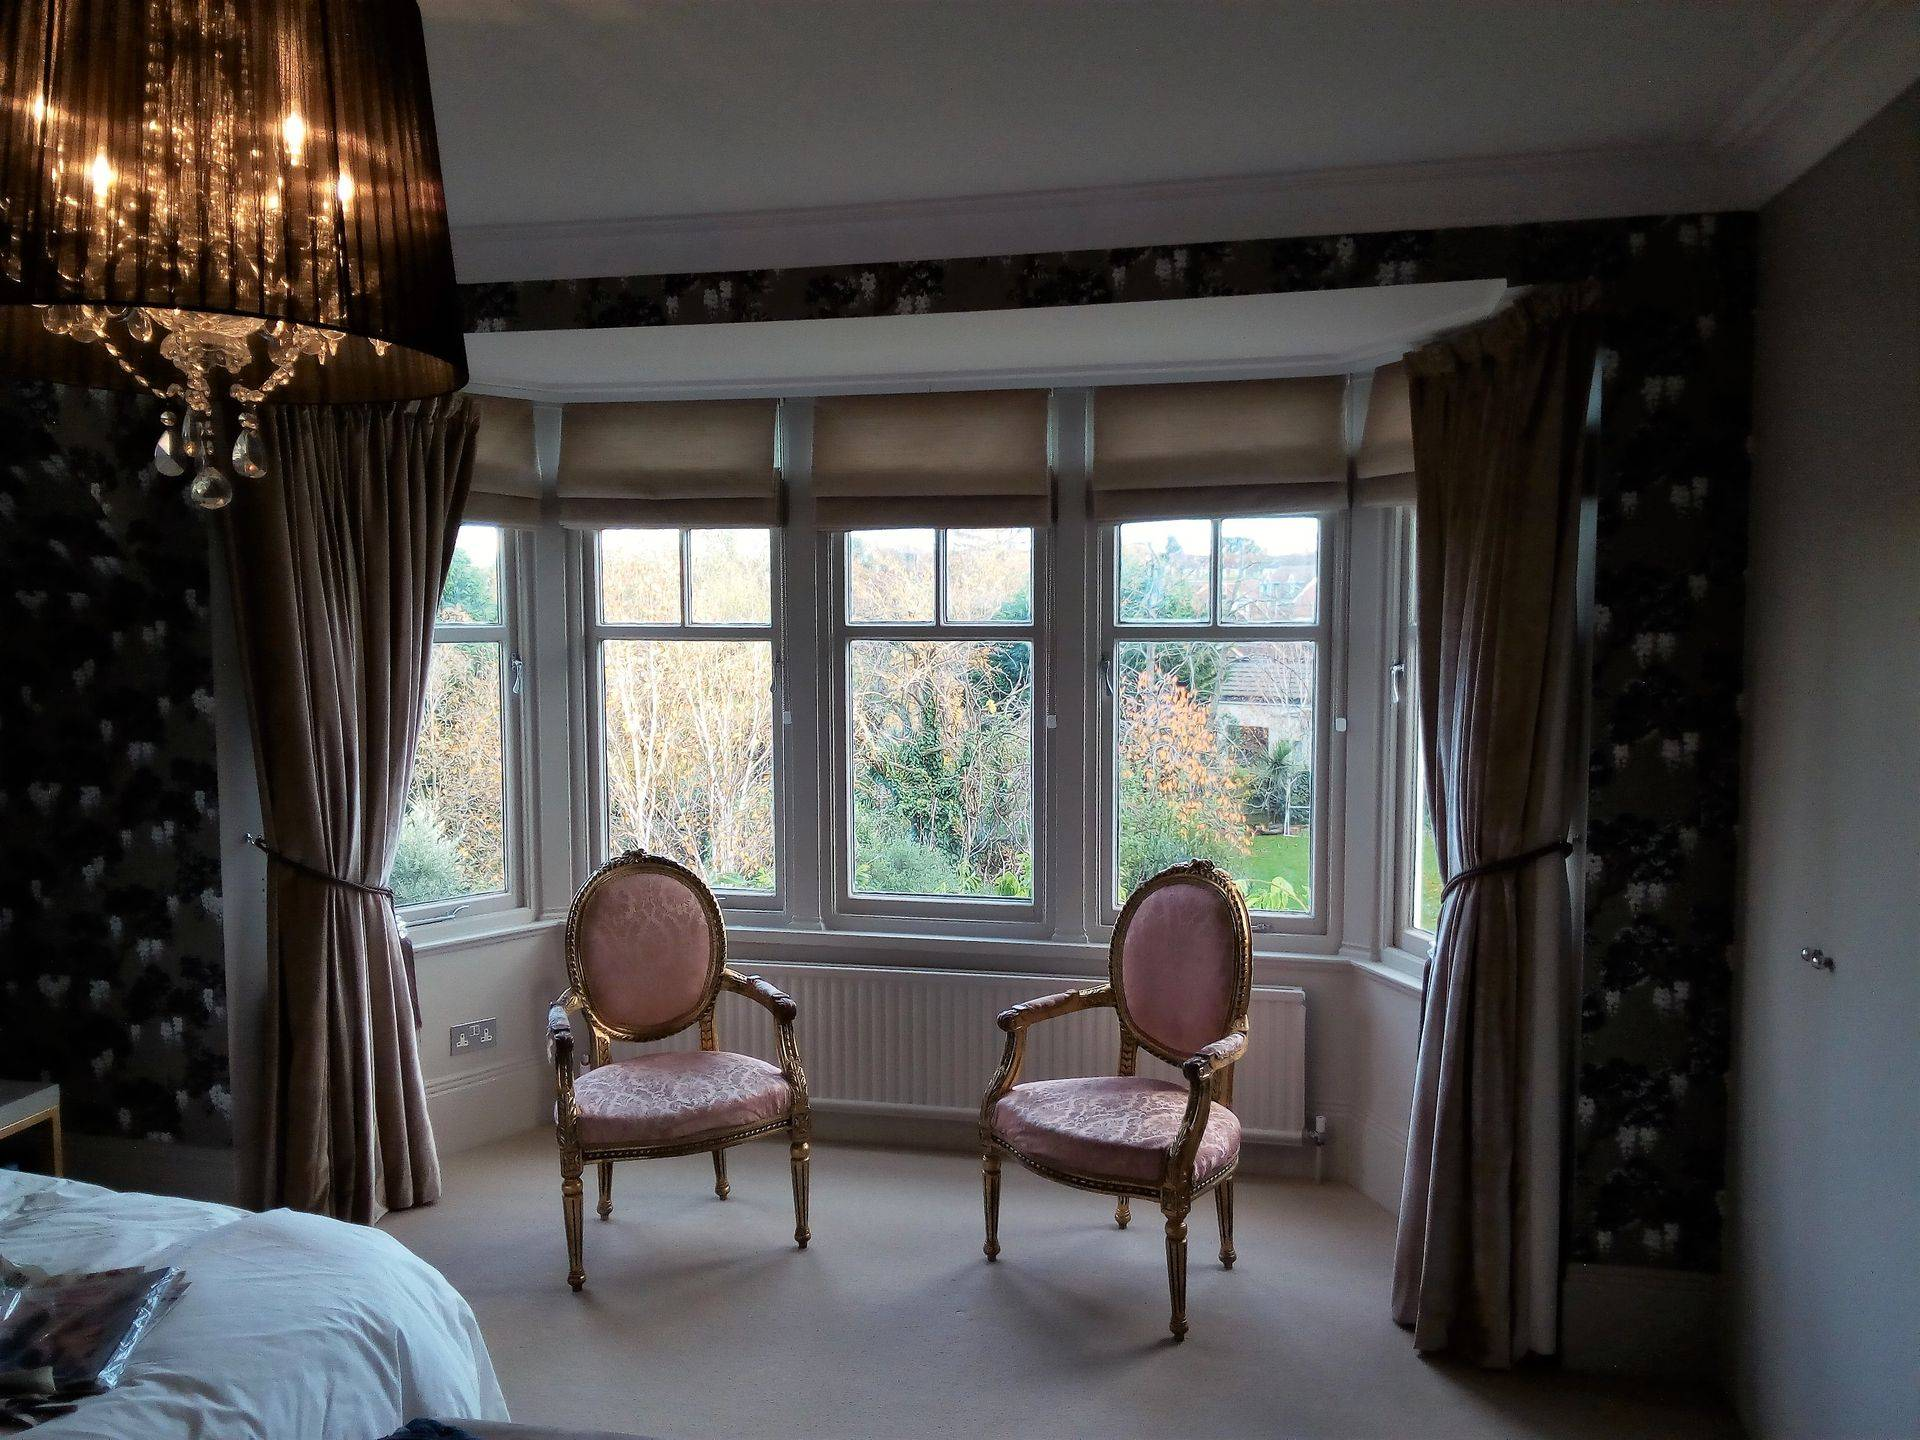 Velvet curtains with contrast Roman Blinds